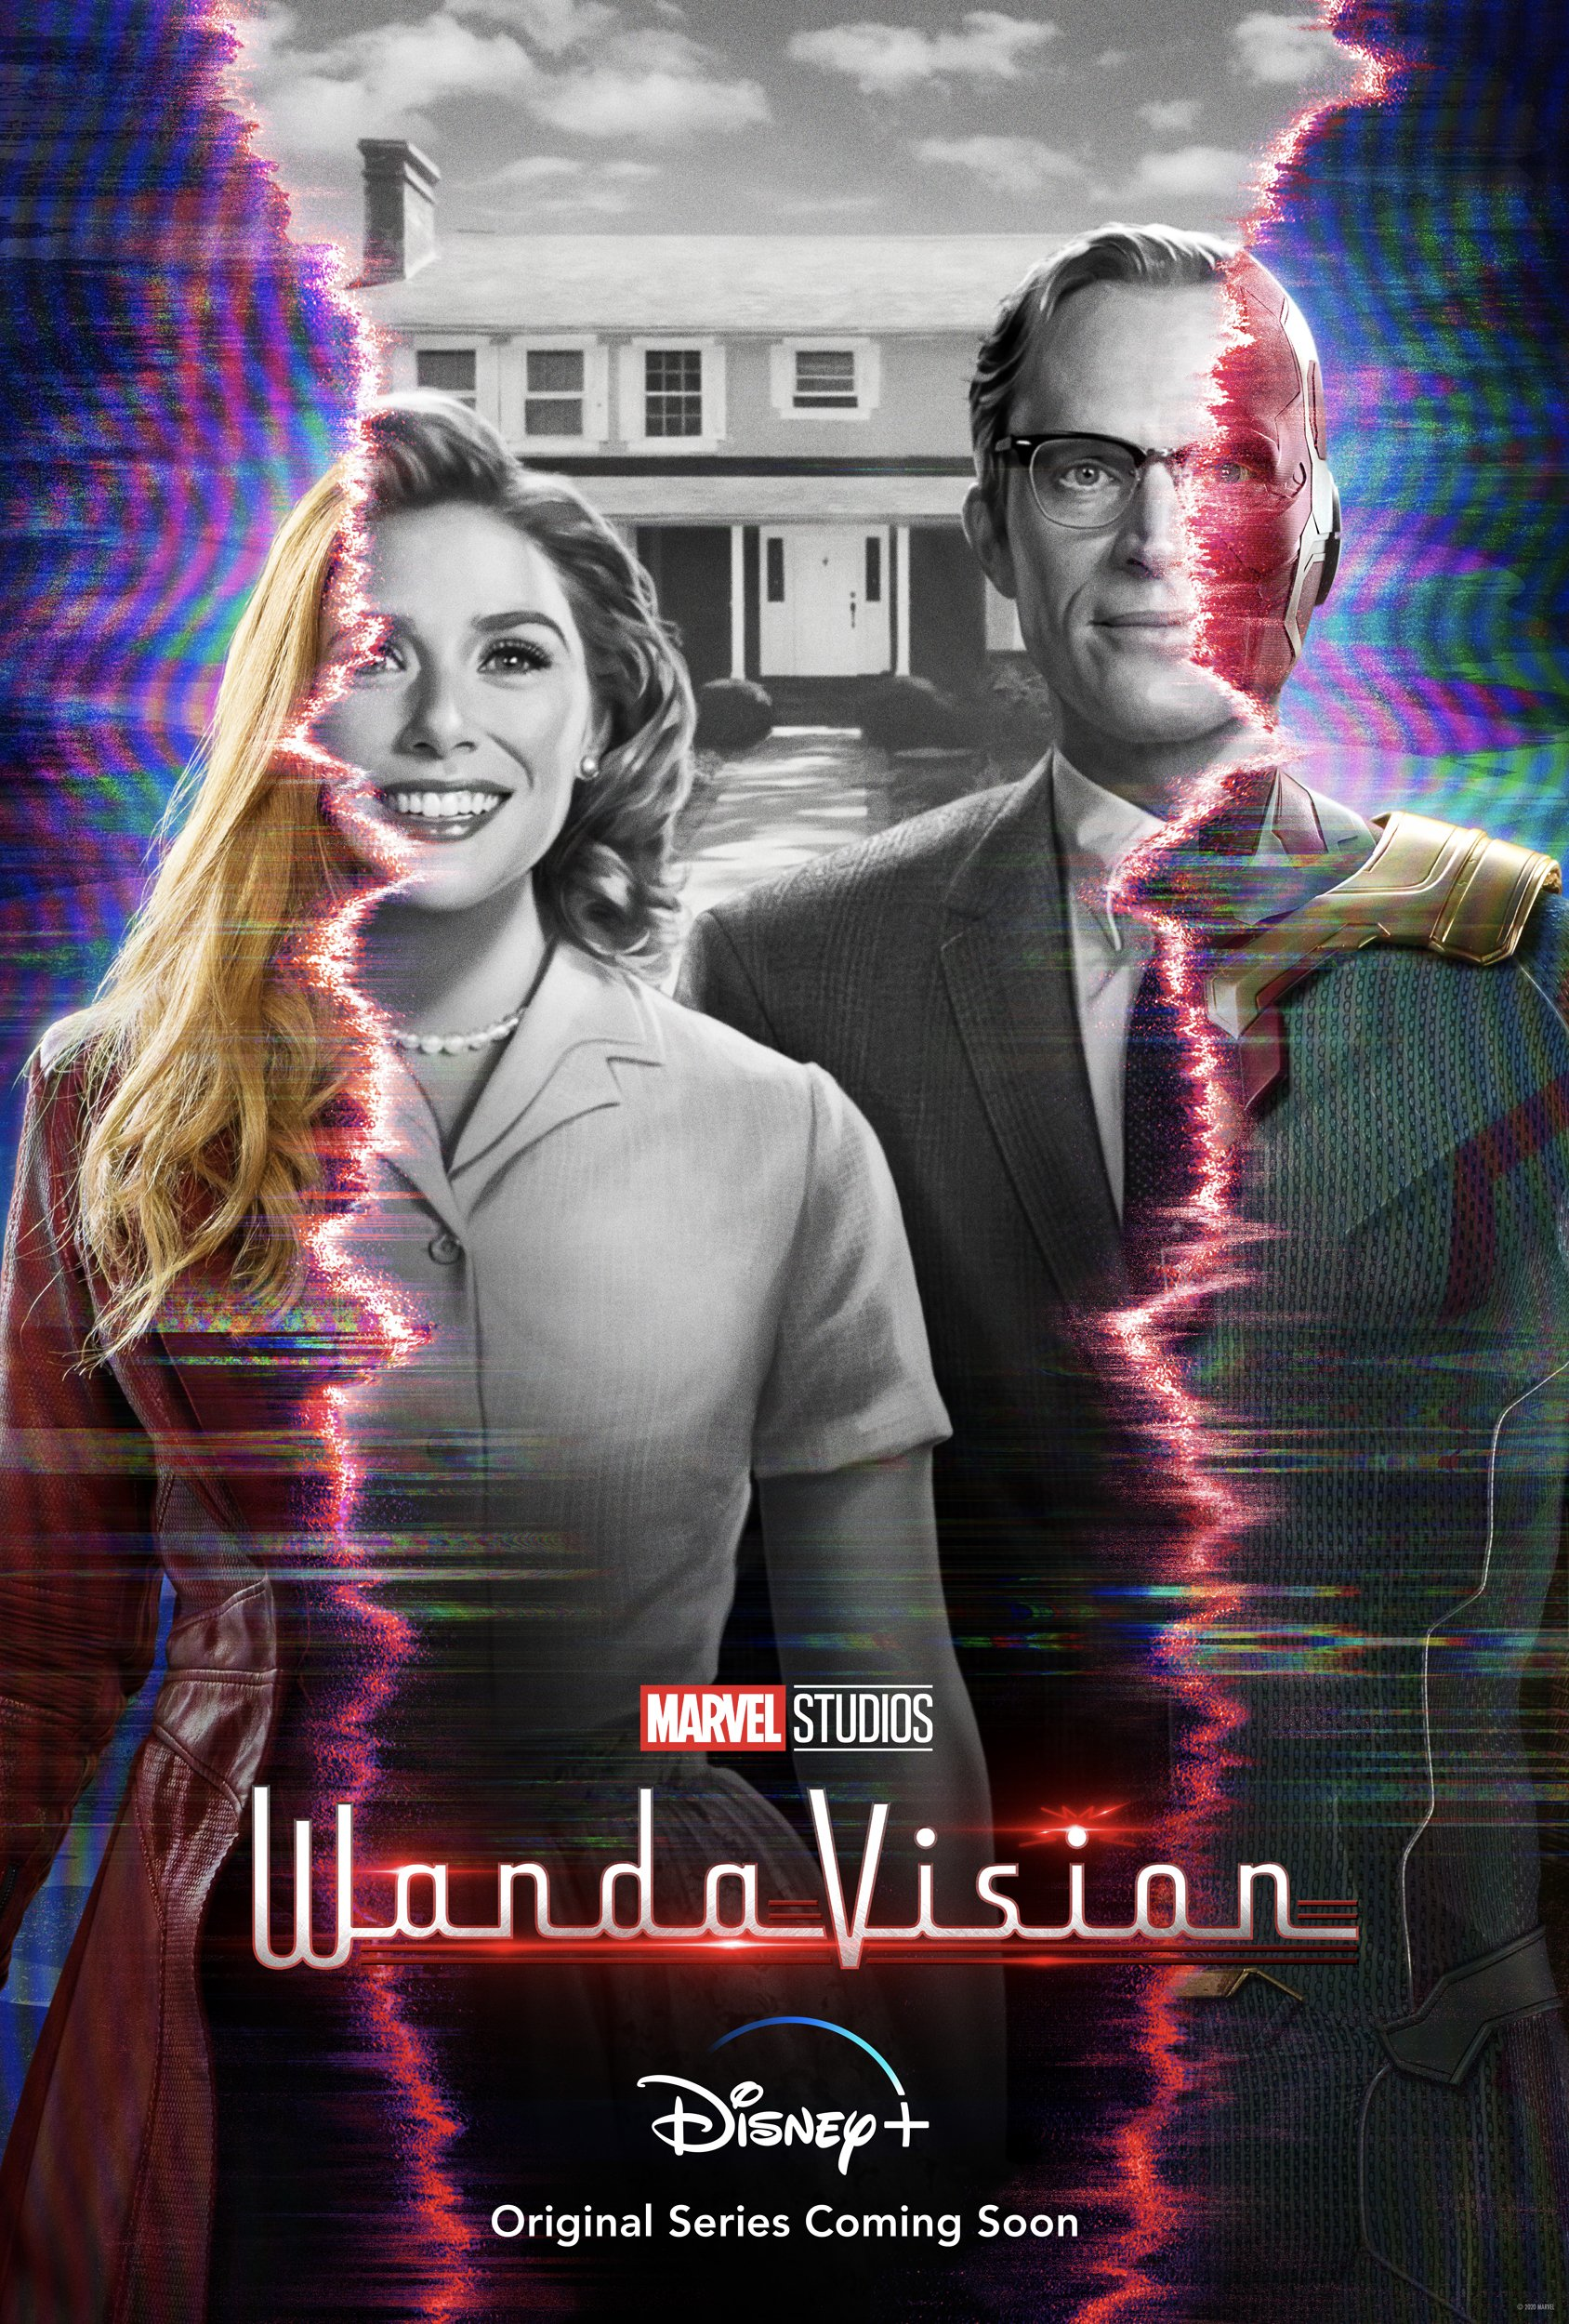 Wandavision Release Date Confirmed